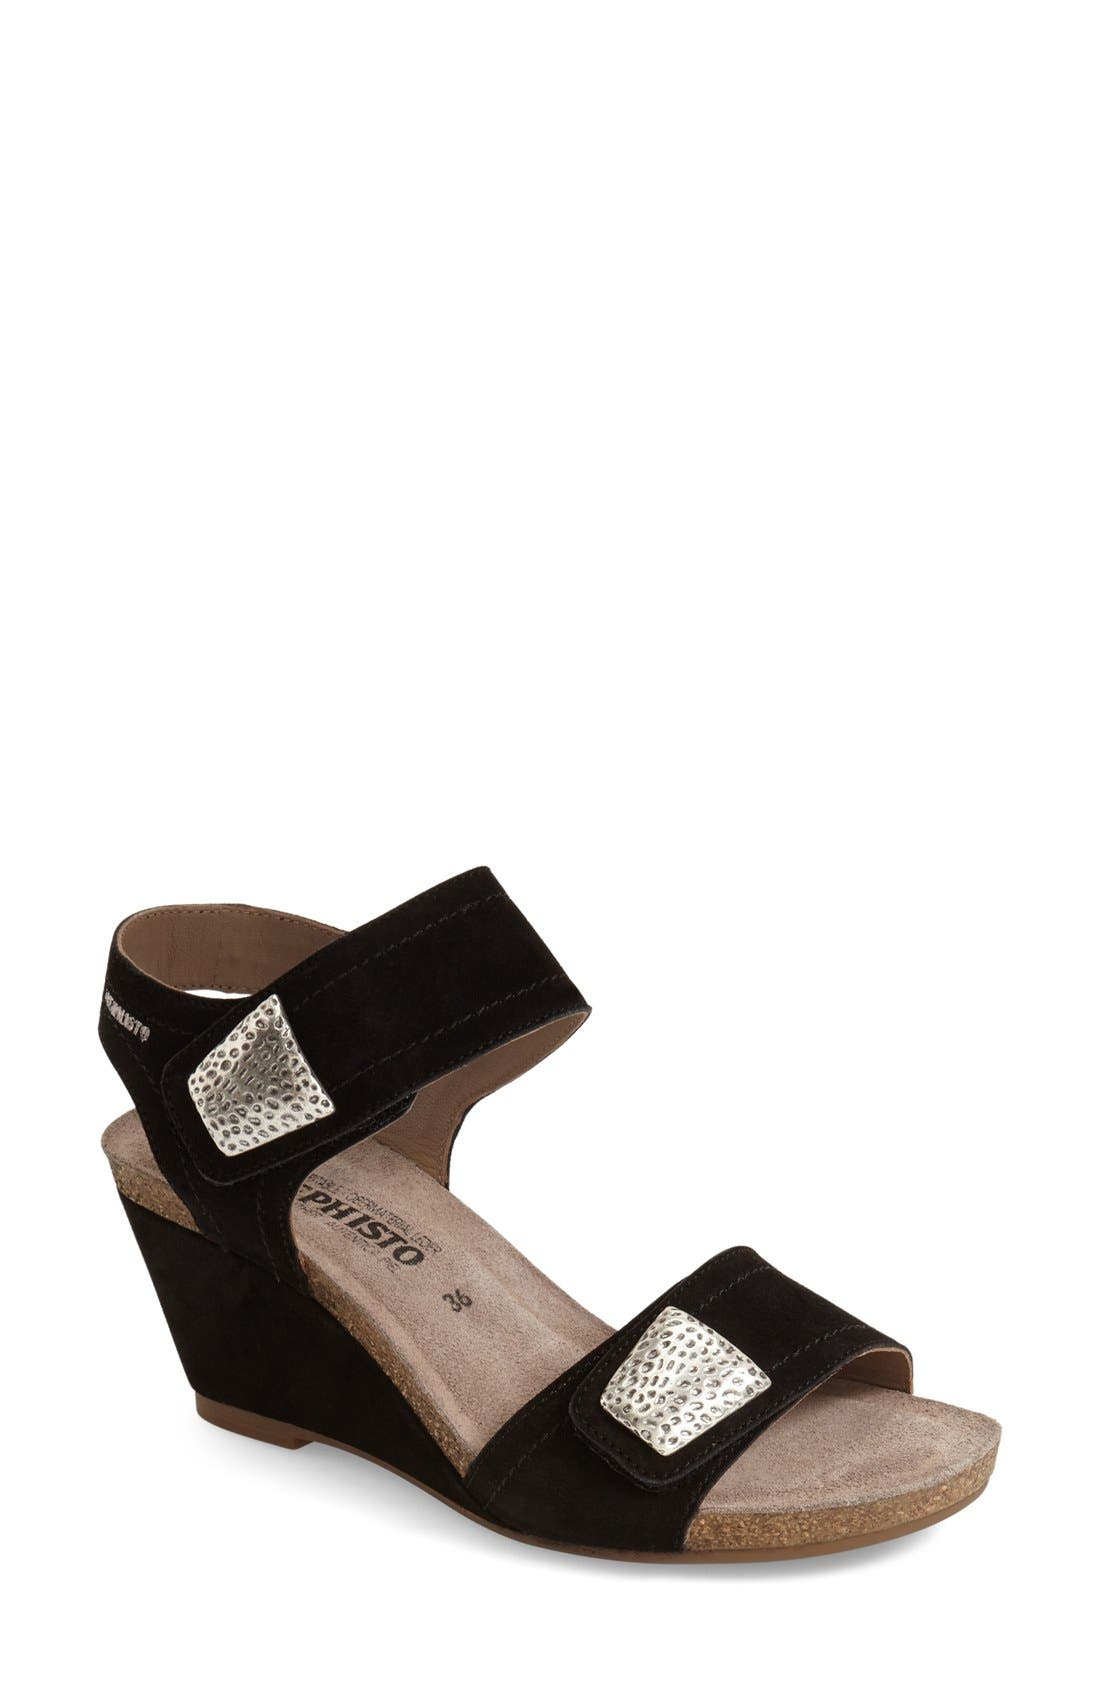 'Jackie' Wedge Sandal,                         Main,                         color, Black Premium Suede